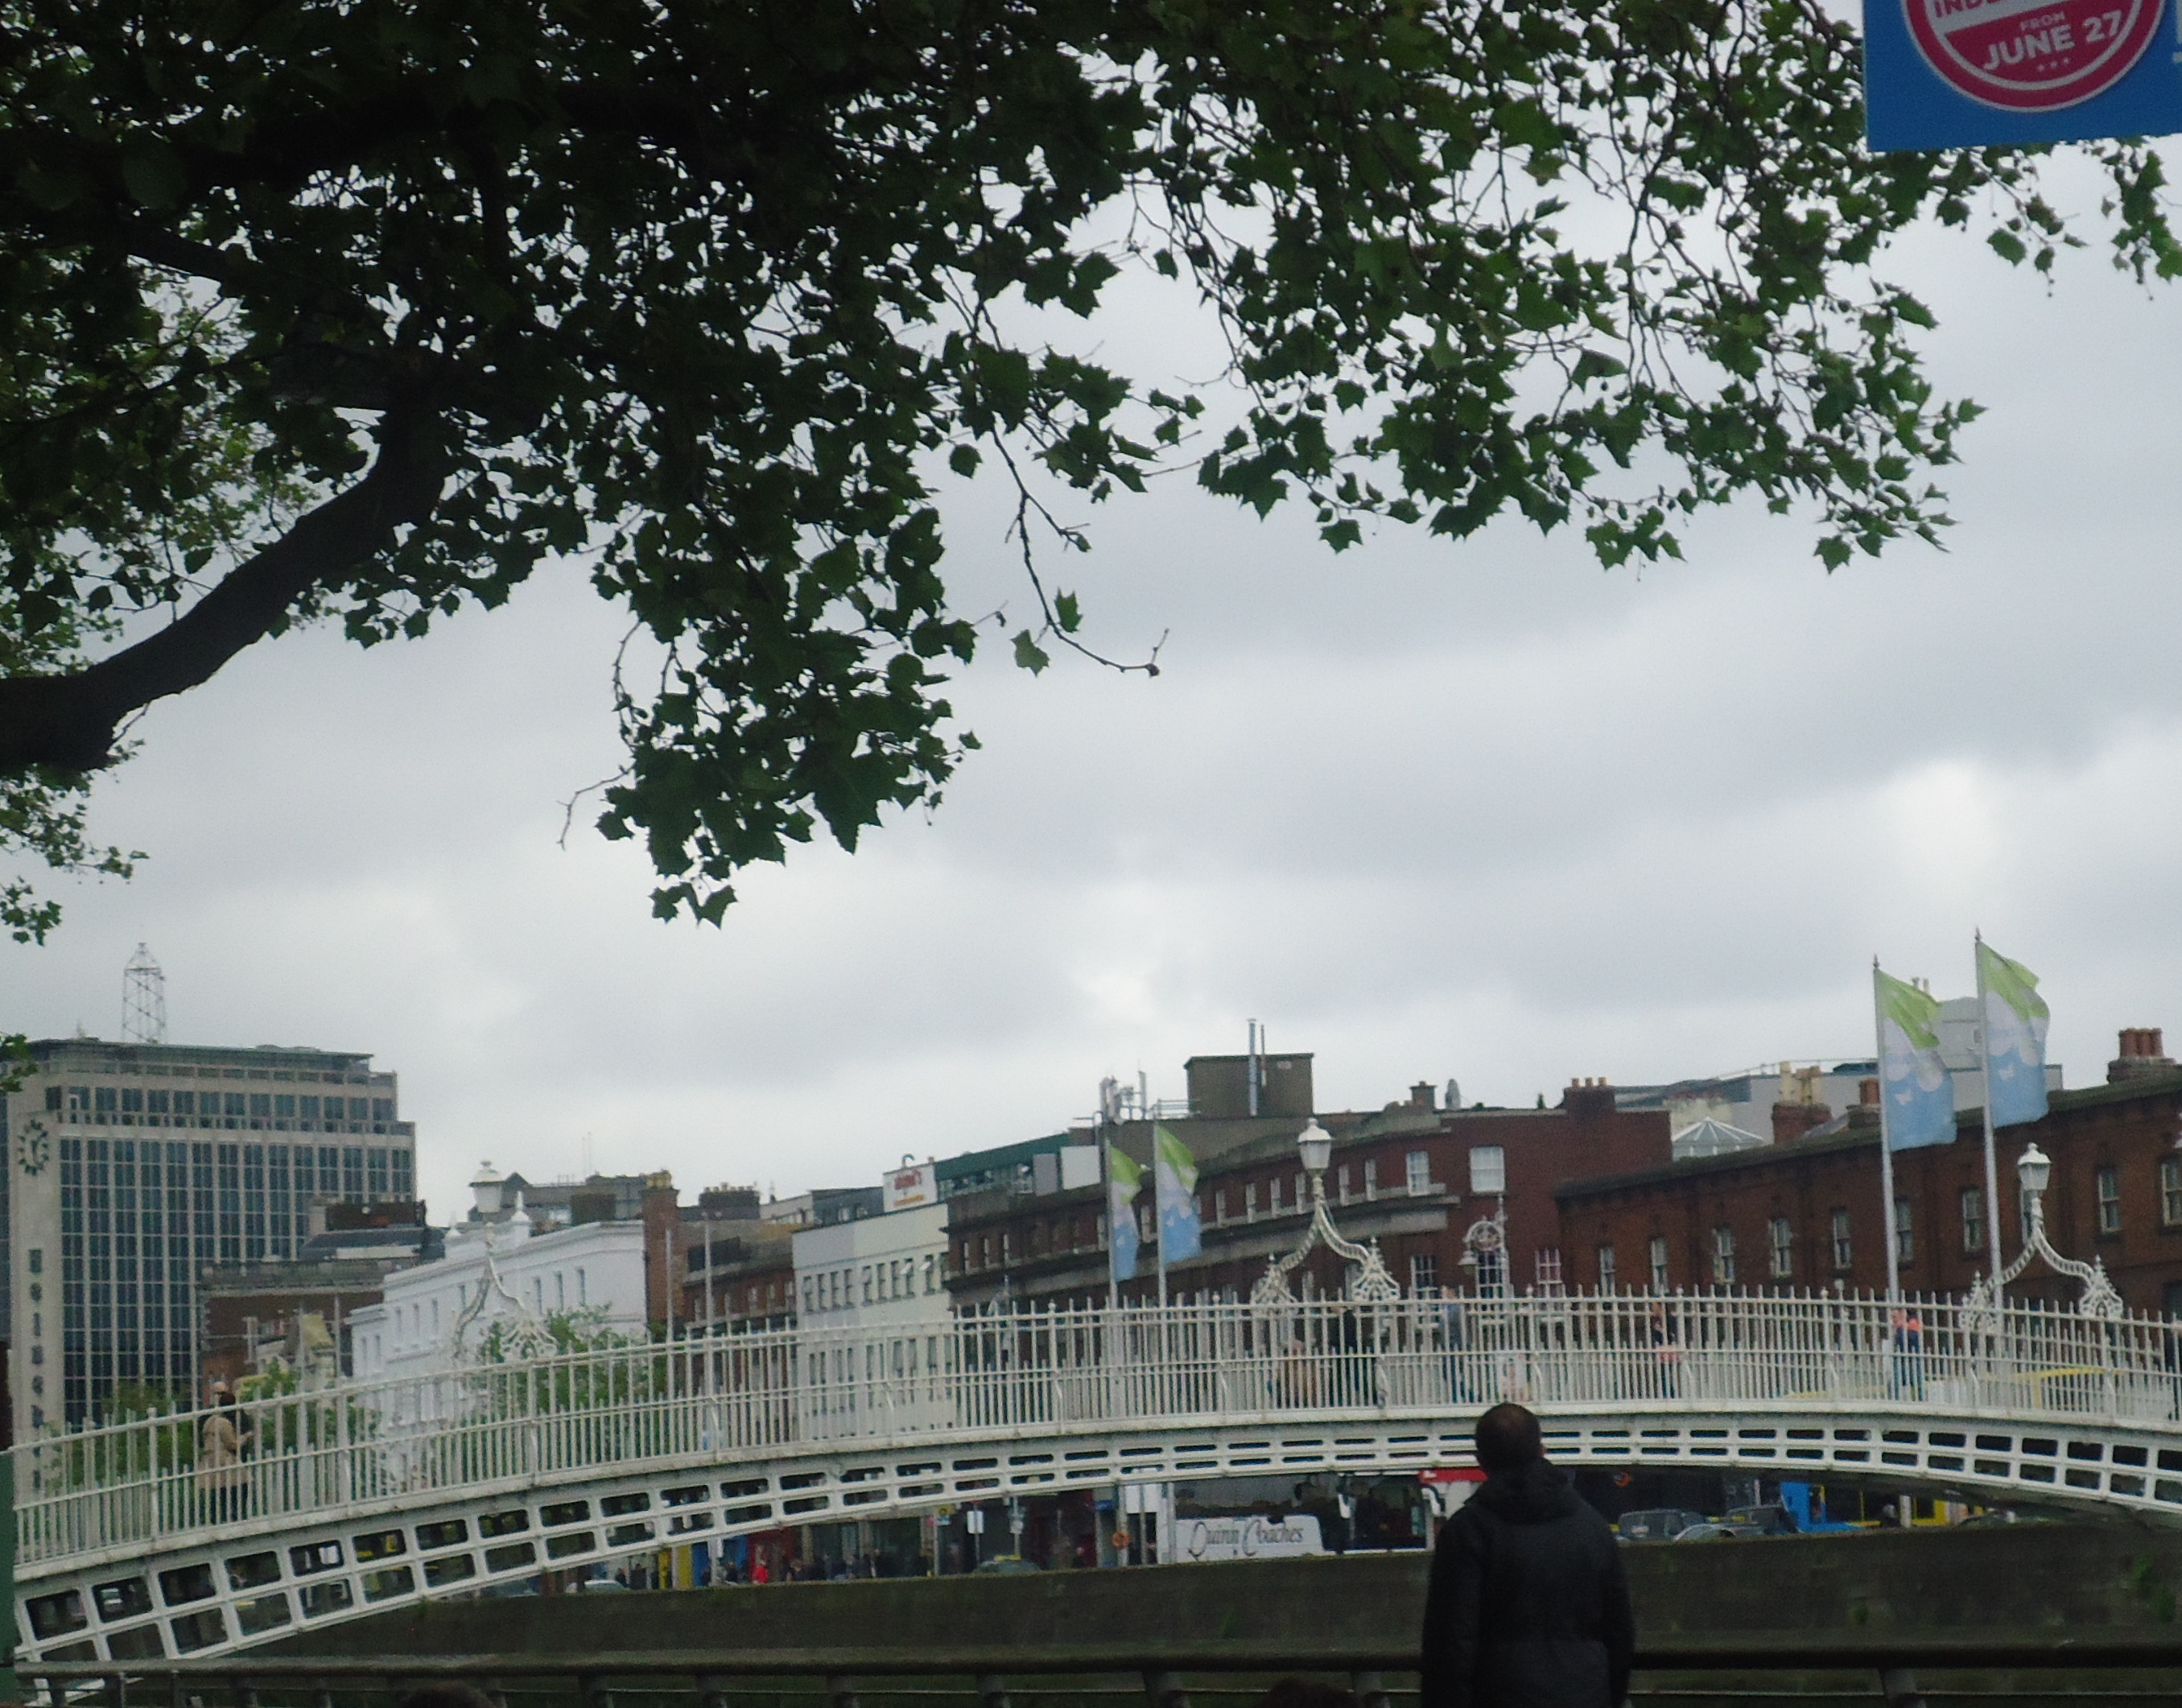 Dublin's Ha'penny Bridge, Dublin, Ireland